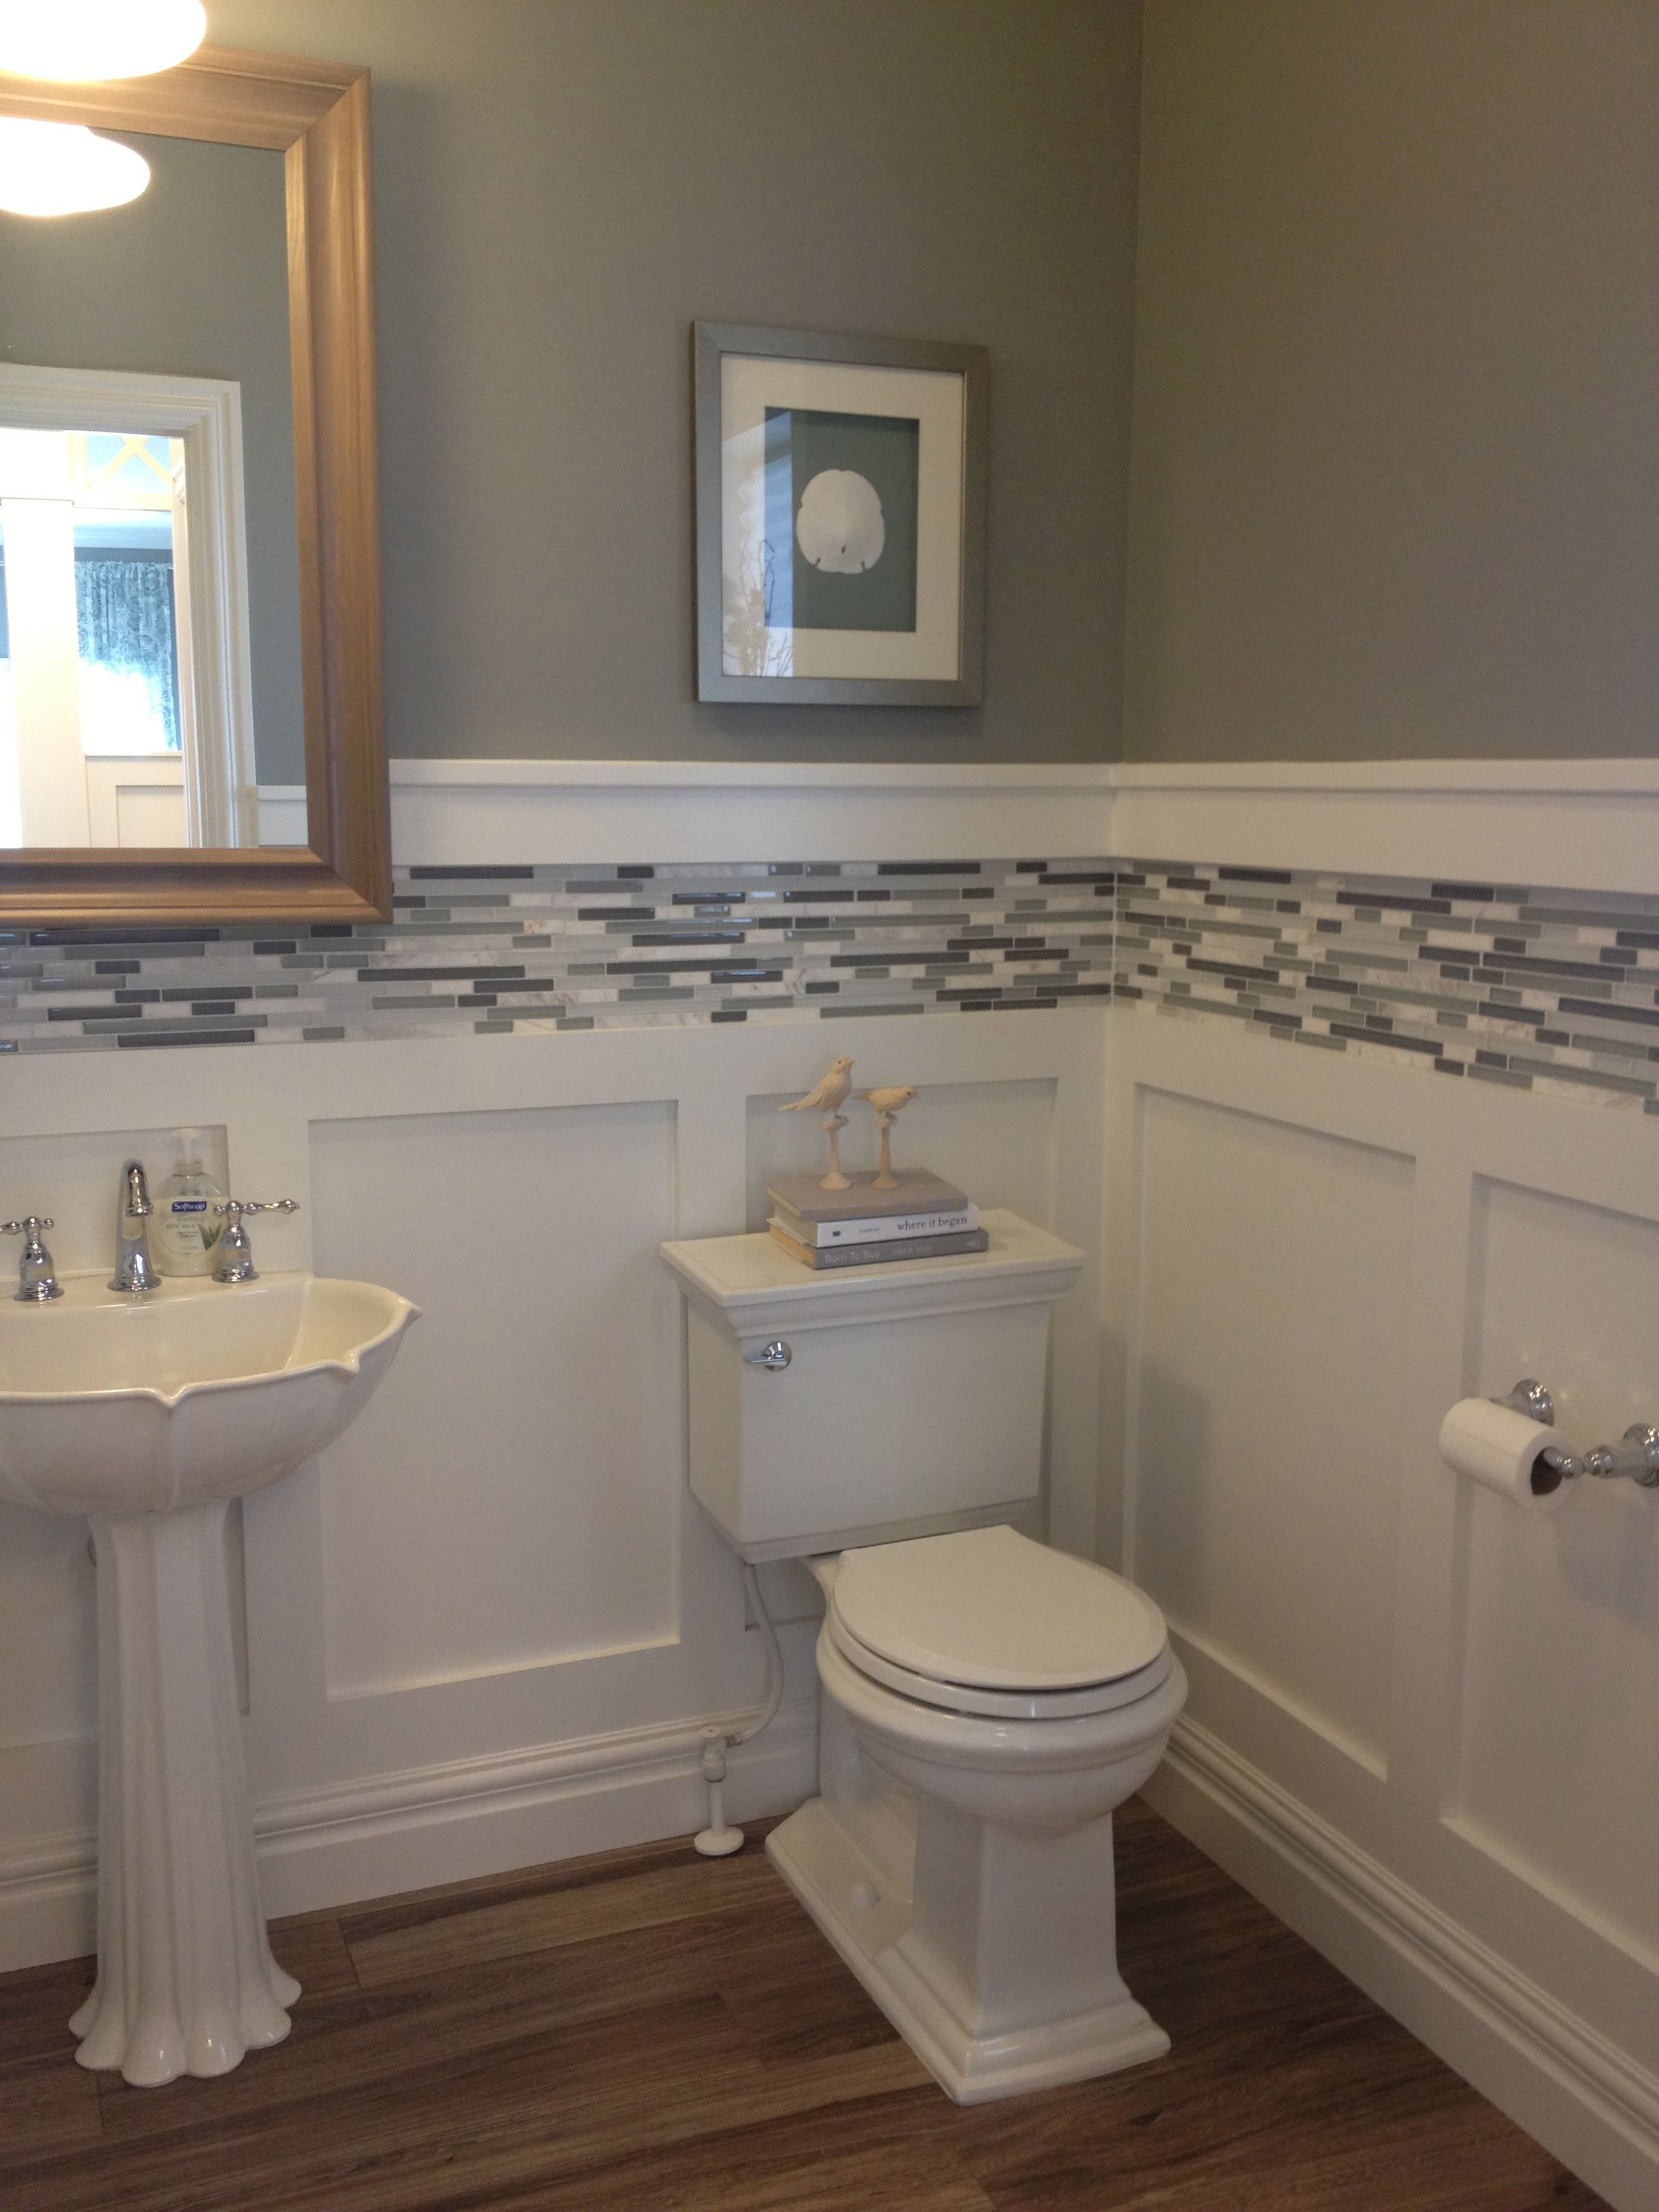 delightful Bathroom Wall Design Ideas Part - 3: Bathroom choices- help me decide! Should I go bold or play it safe?